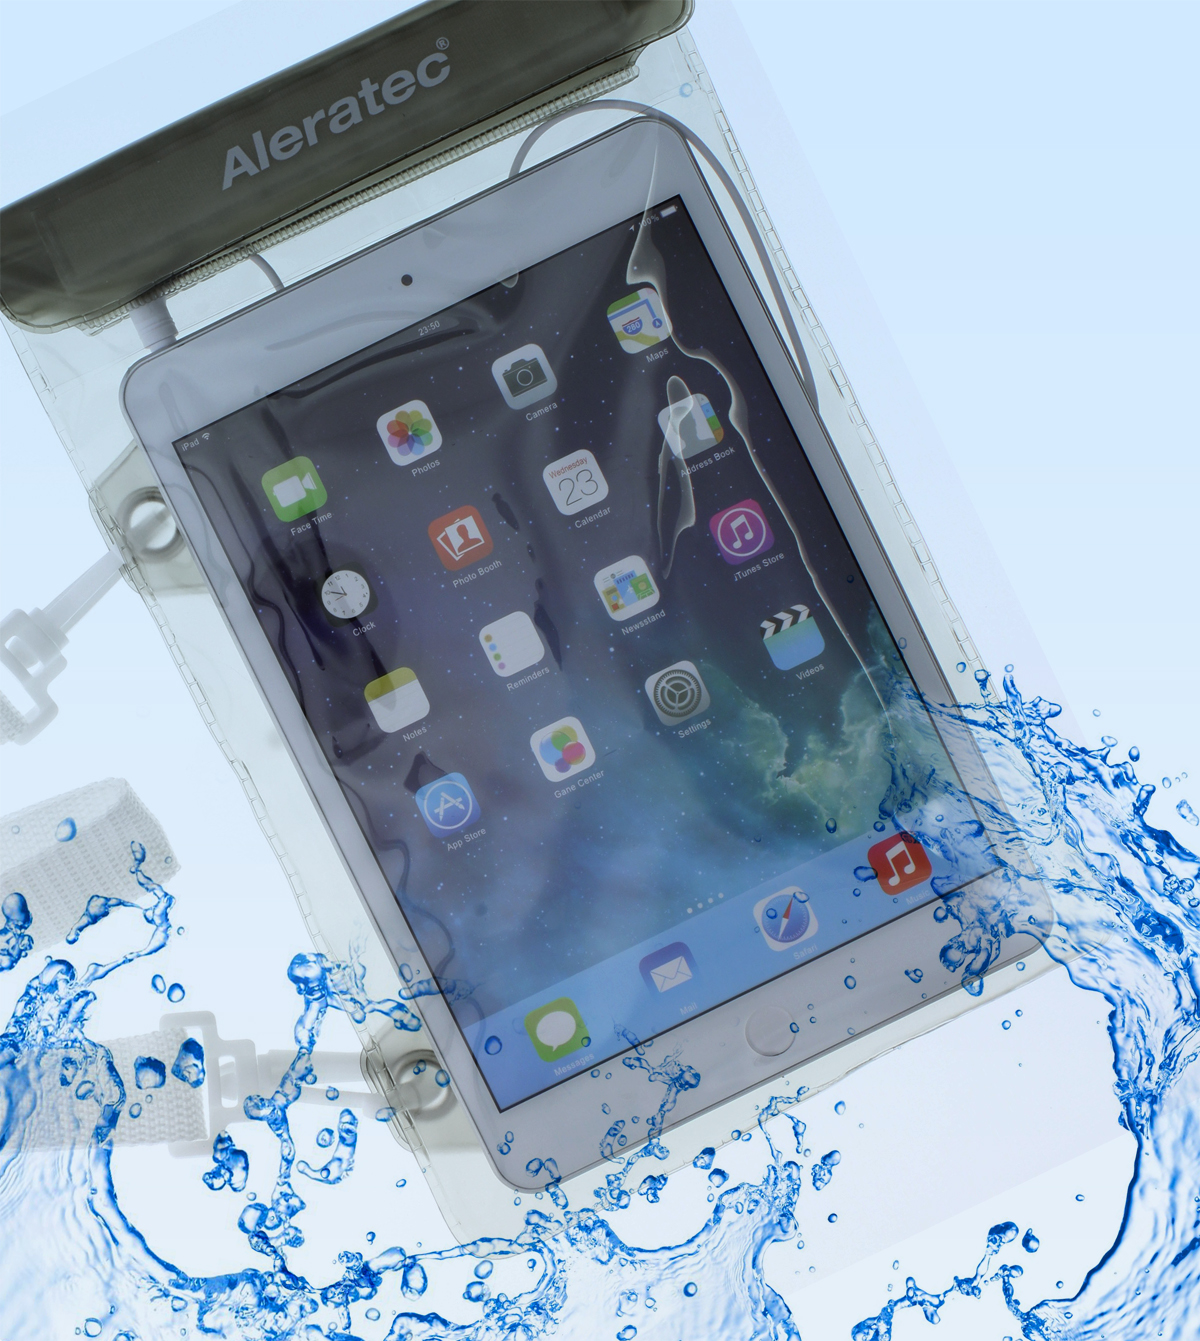 88d884fd0770 Aleratec Water-resistant Dry Bag Pouch w  Speakers for iPad Mini and 7